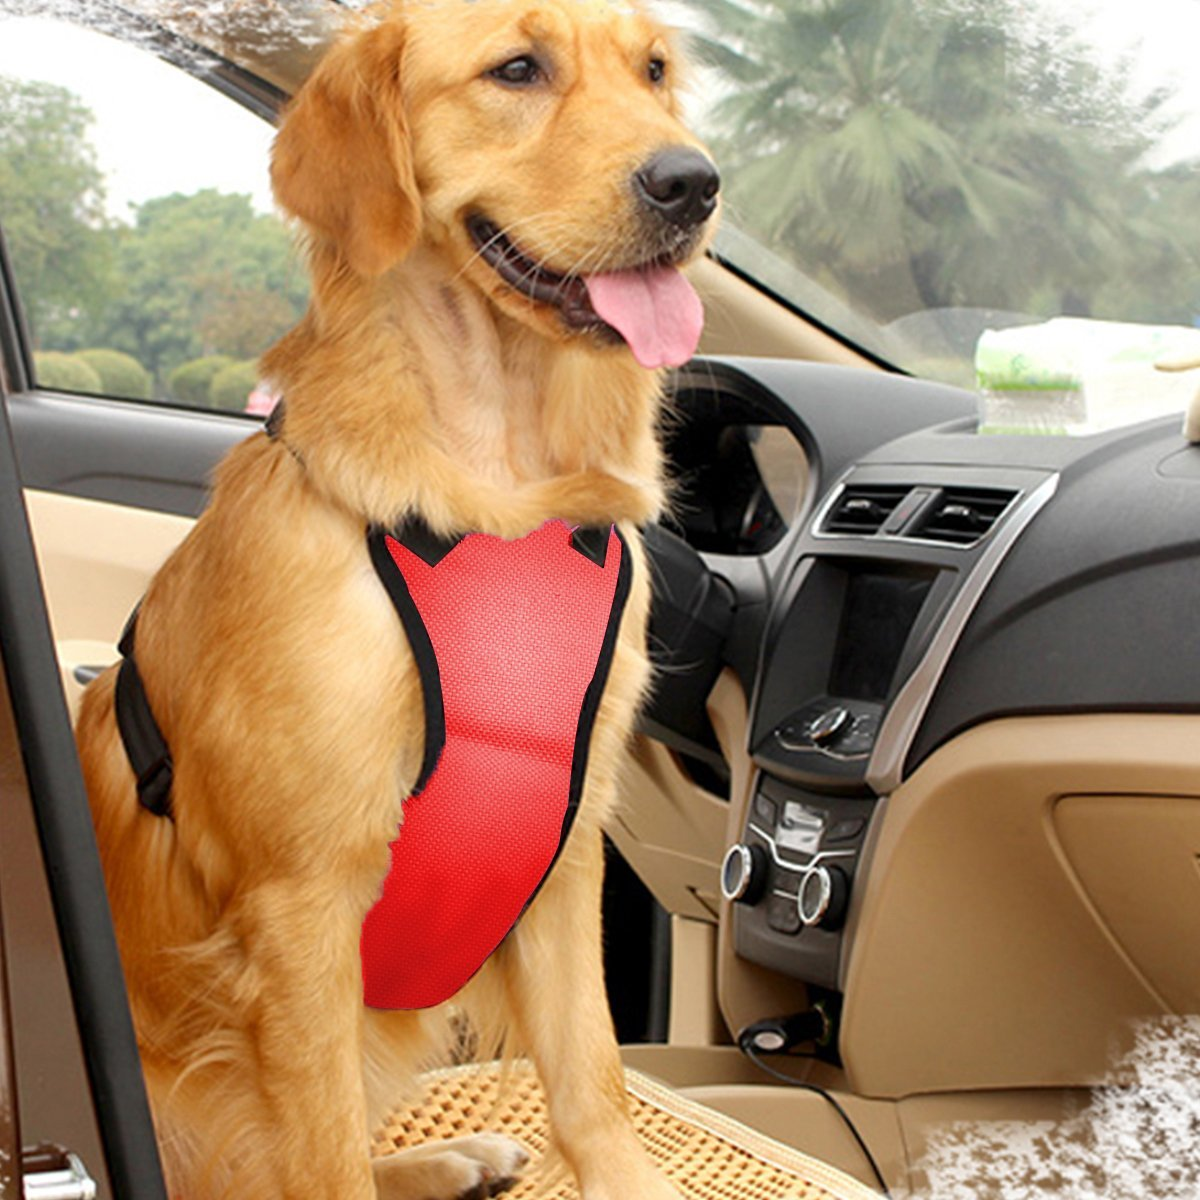 EAST-BIRD Dog Safety Vest Harness with Safety Belt for Most Car, Travel Strap Vest with Car Seat Belt Lead Adjustable Lightweight and Comfortable (M, Red)